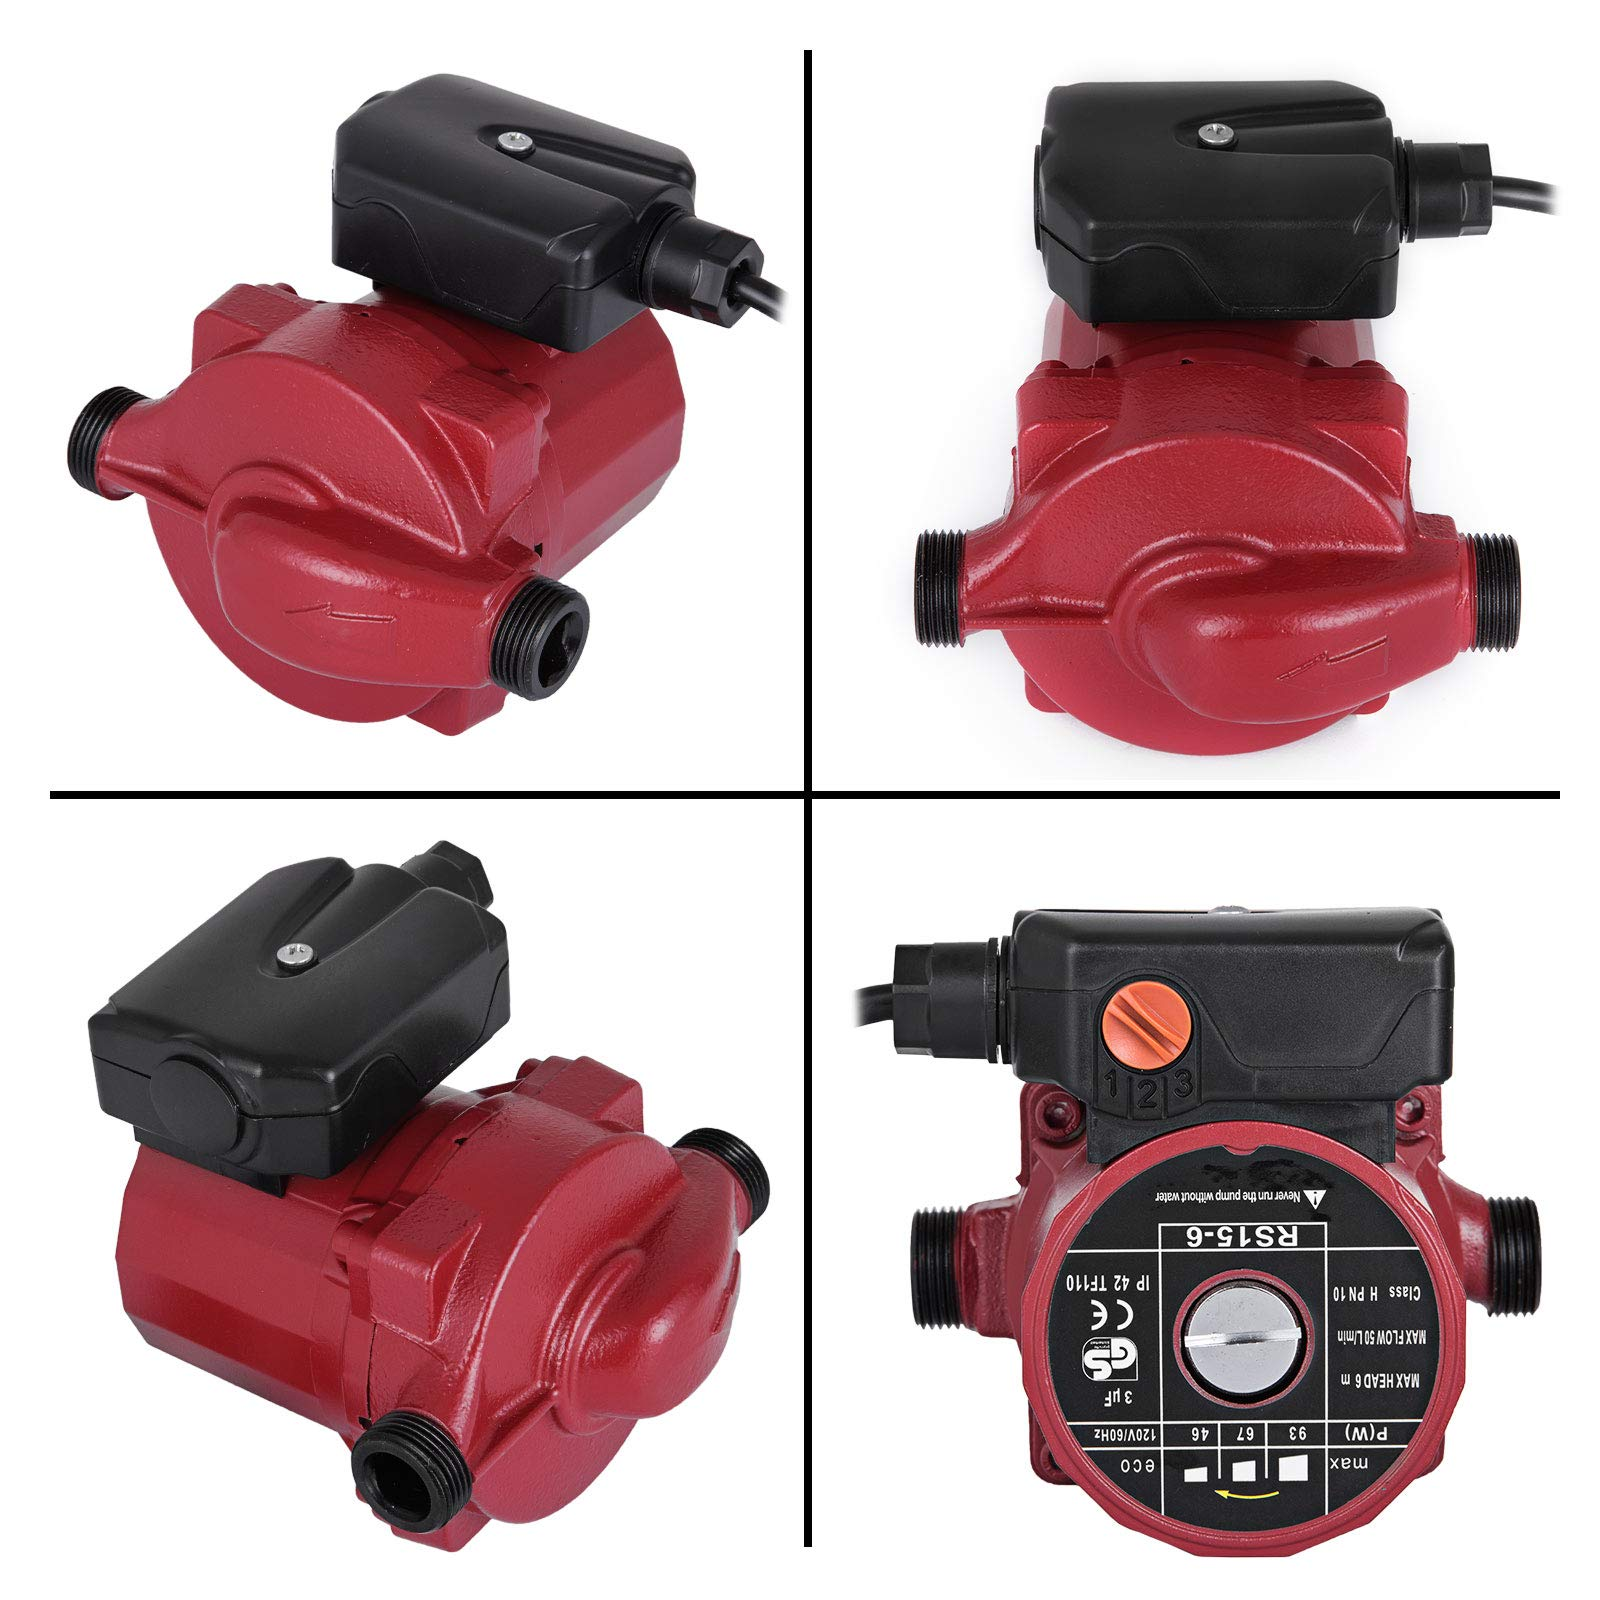 Happybuy RS15-6 Hot Water Recirculating Pump 110V Circulation Pump 0.75 inches NPT 3-speed Recirculation Pump 9.5 Gpm for Water Heater System by Happybuy (Image #9)